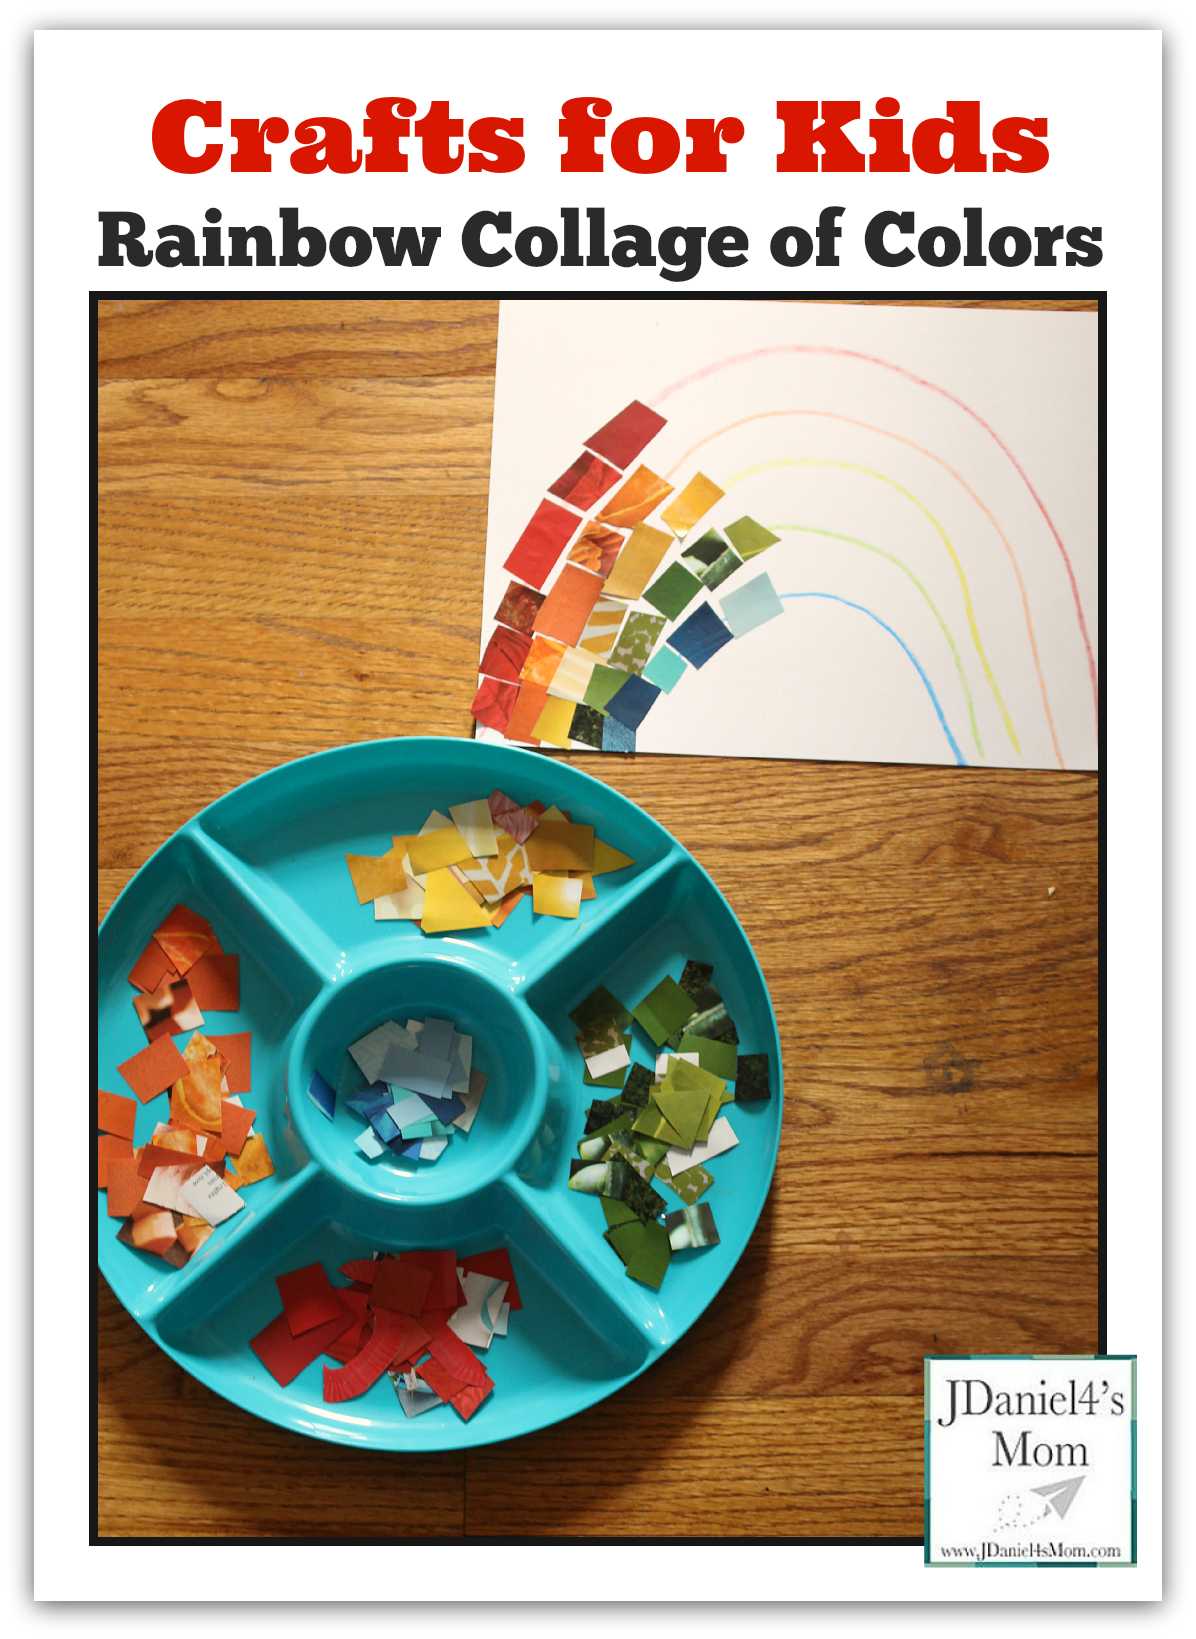 Crafts for Kids-Rainbow Collage of Colors